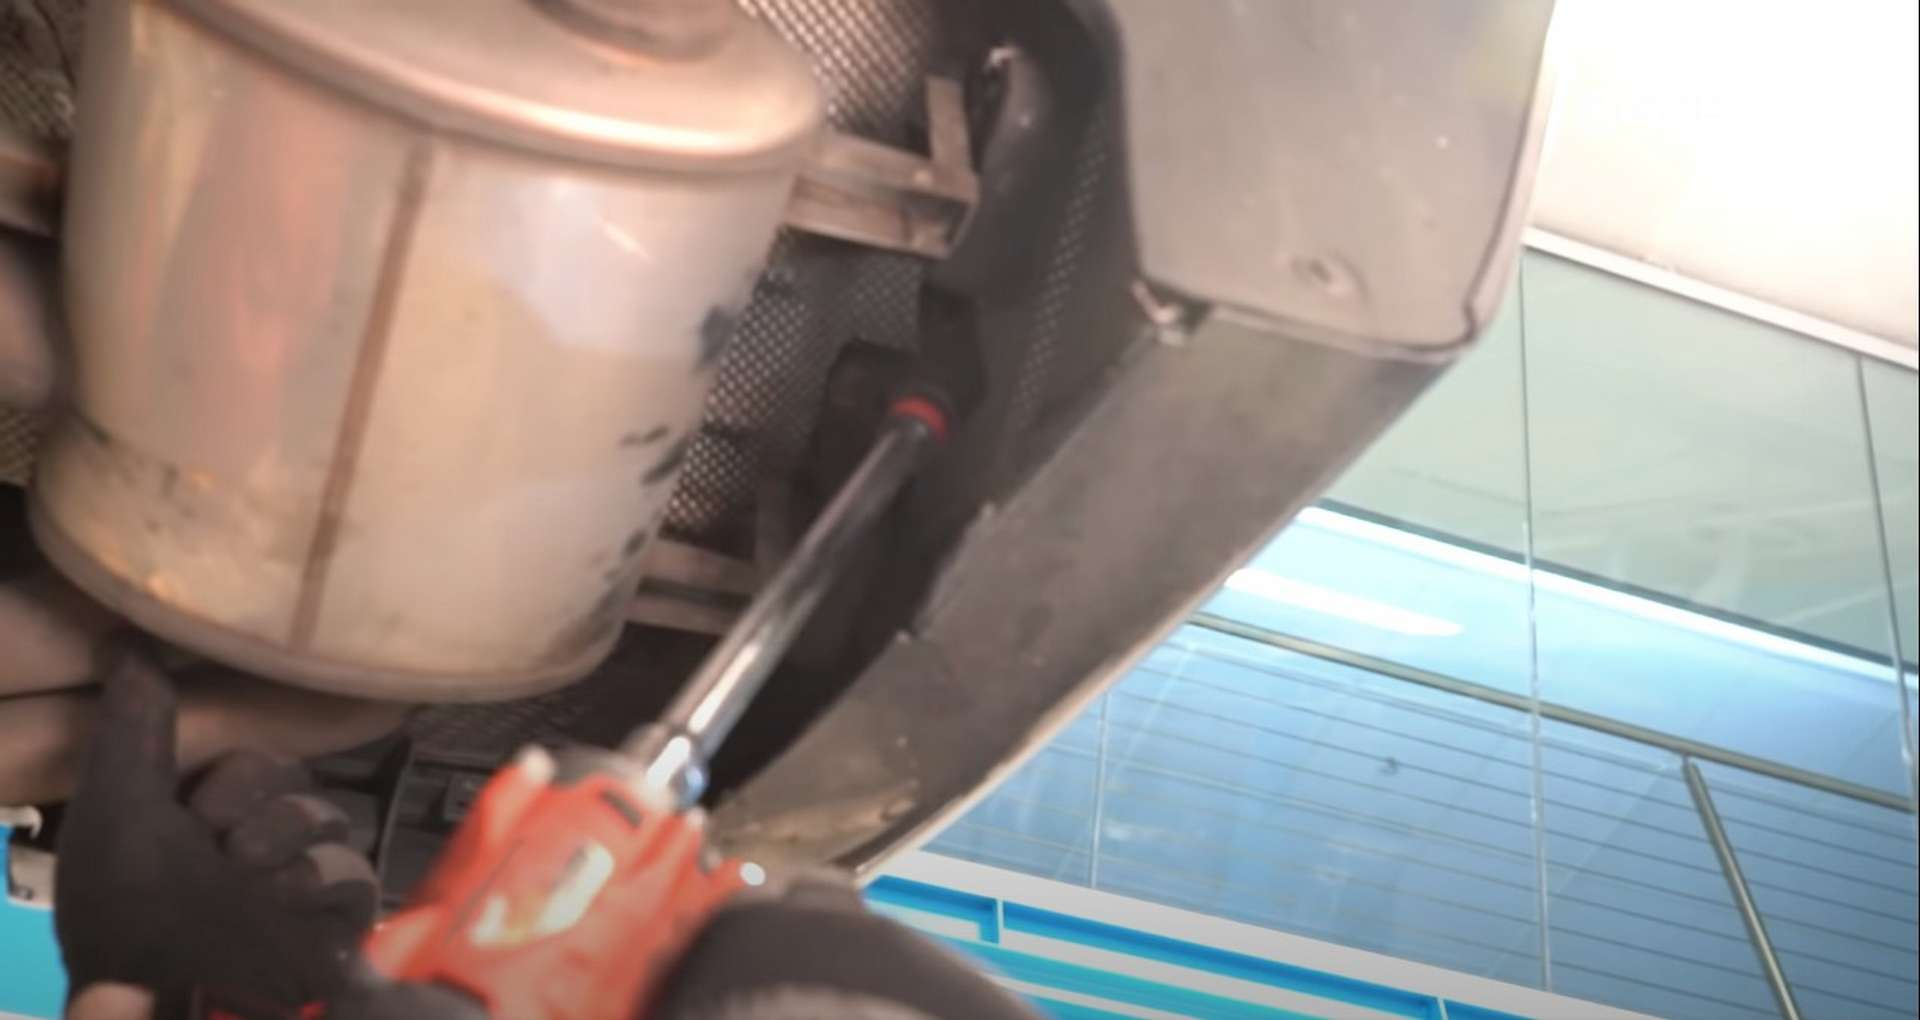 DIY E46 BMW M3 Rear Subframe Refresh Part 1 unbolting the exhaust hanger